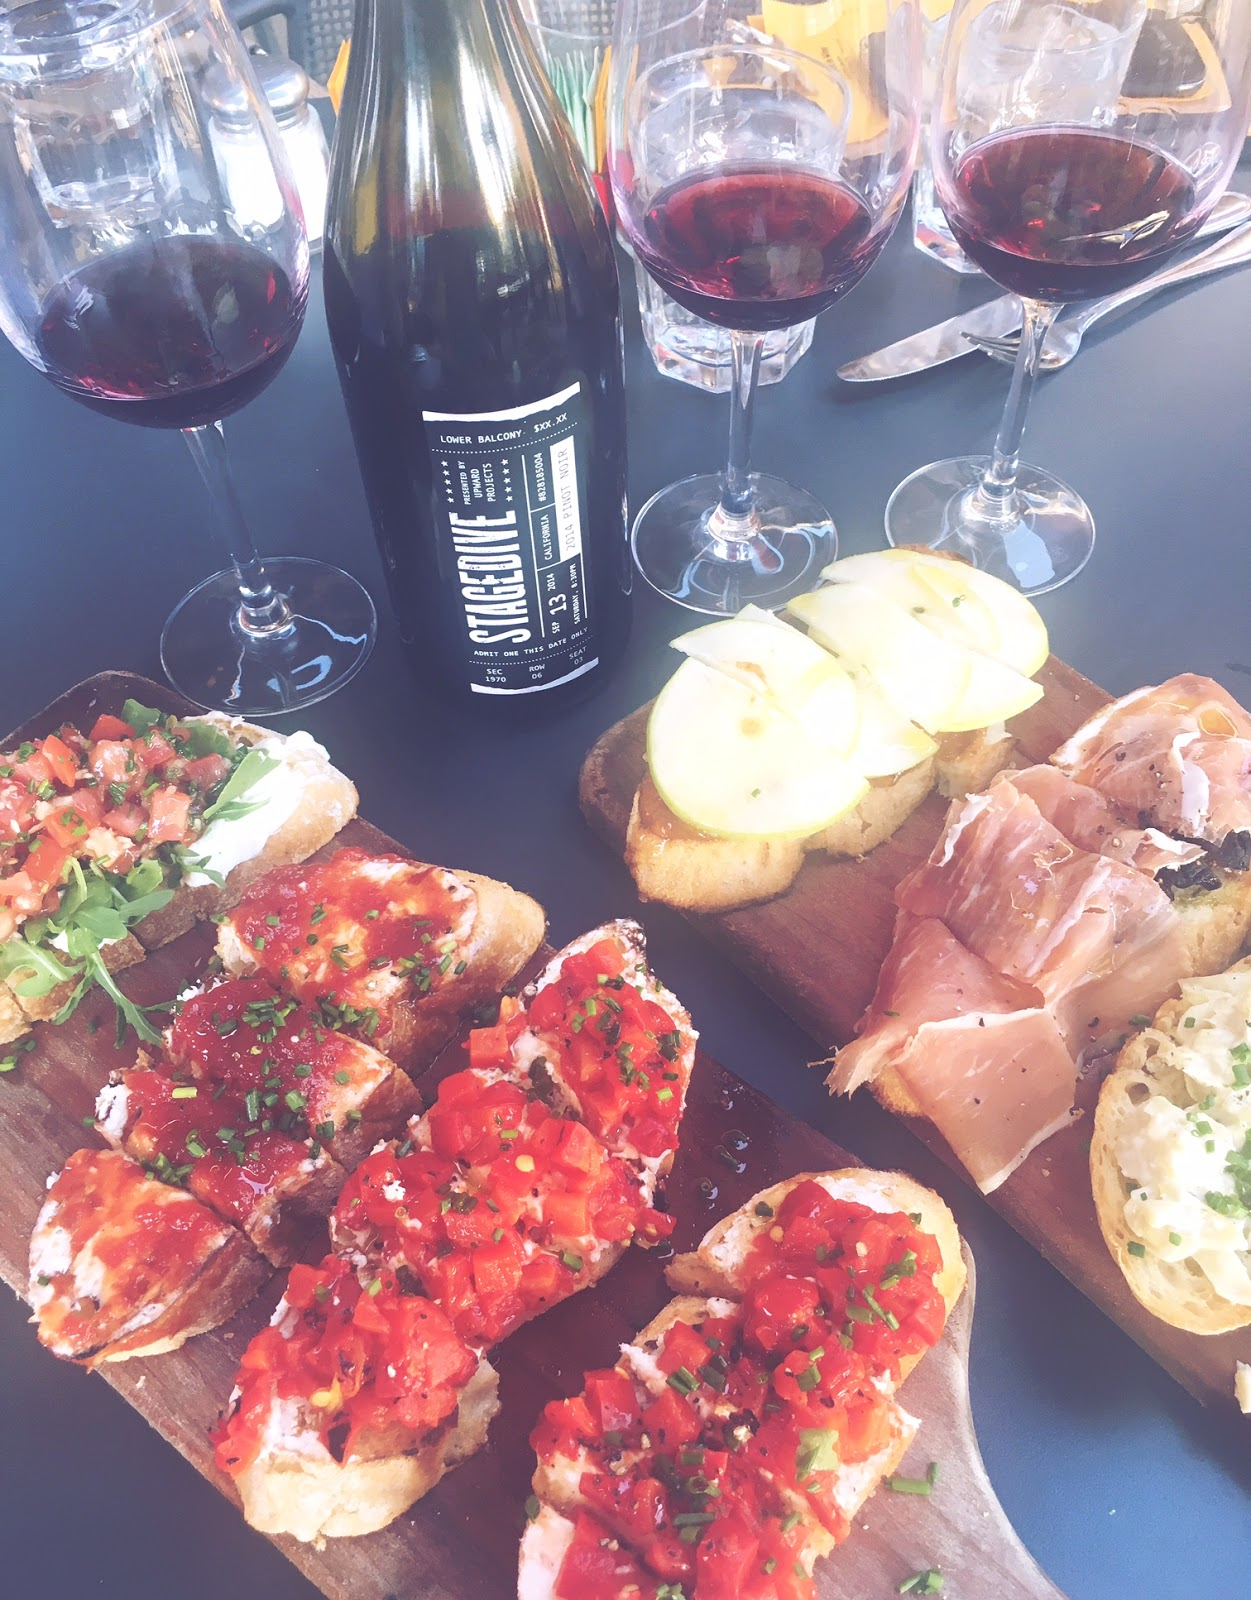 Delicious bruschetta boards and a bottle of wine